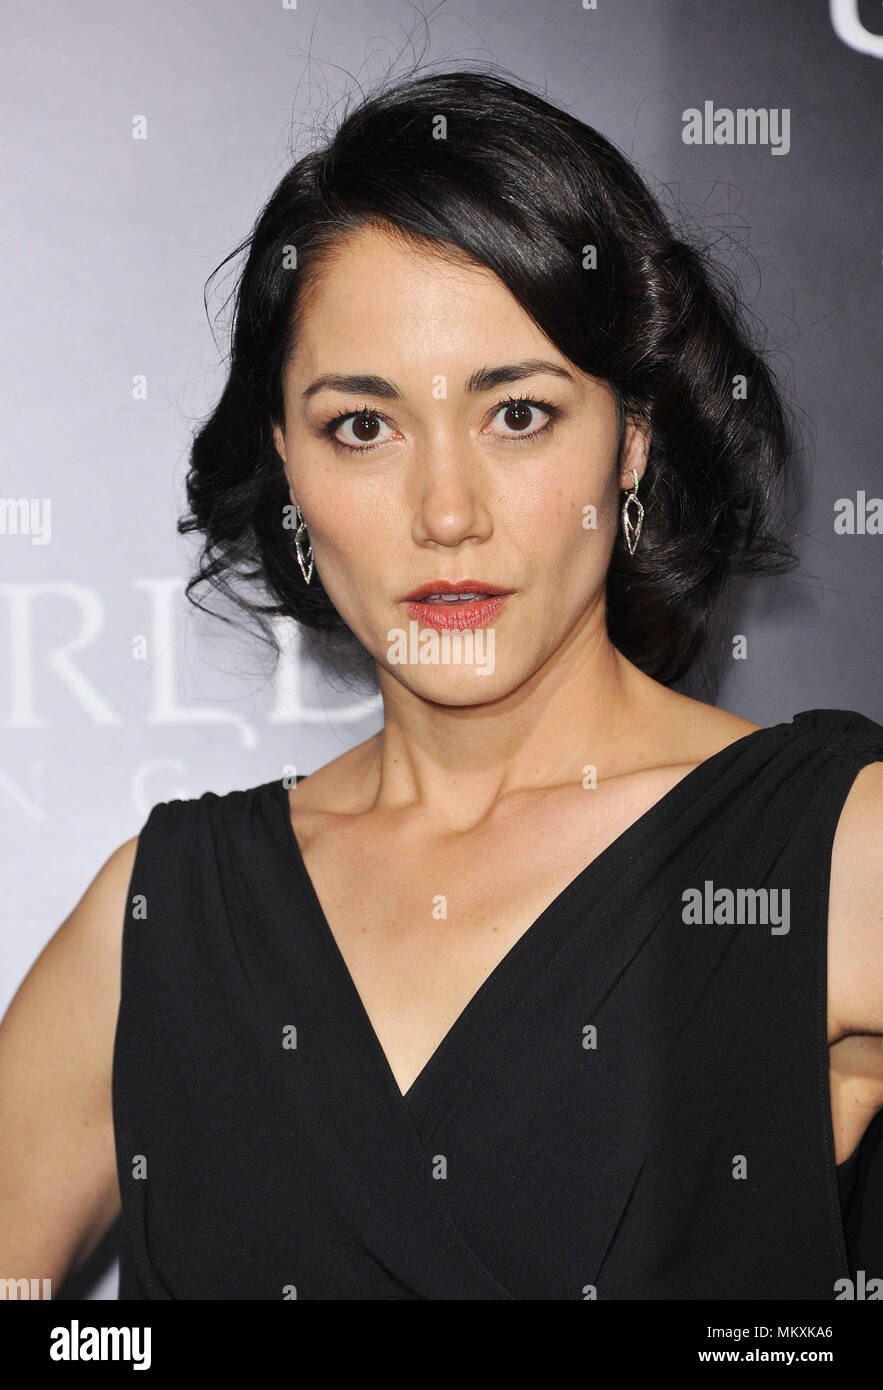 Paparazzi Sandrine Holt nudes (89 photo), Topless, Leaked, Selfie, underwear 2015